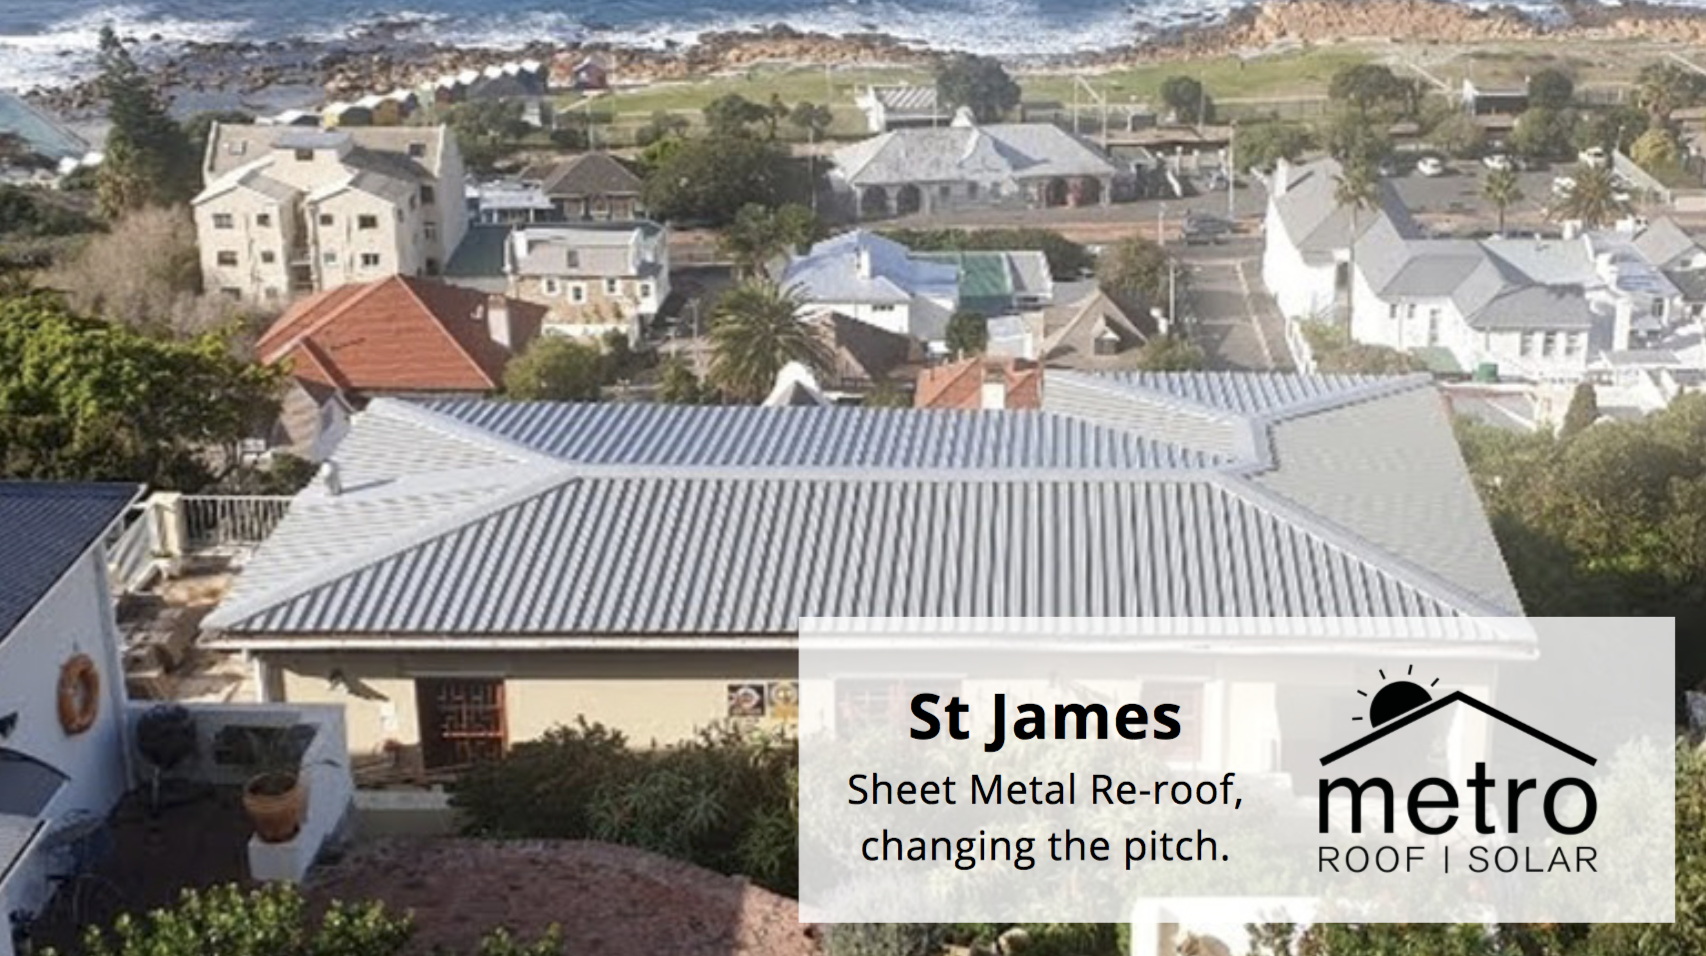 Sheet Metal Roofing in St James